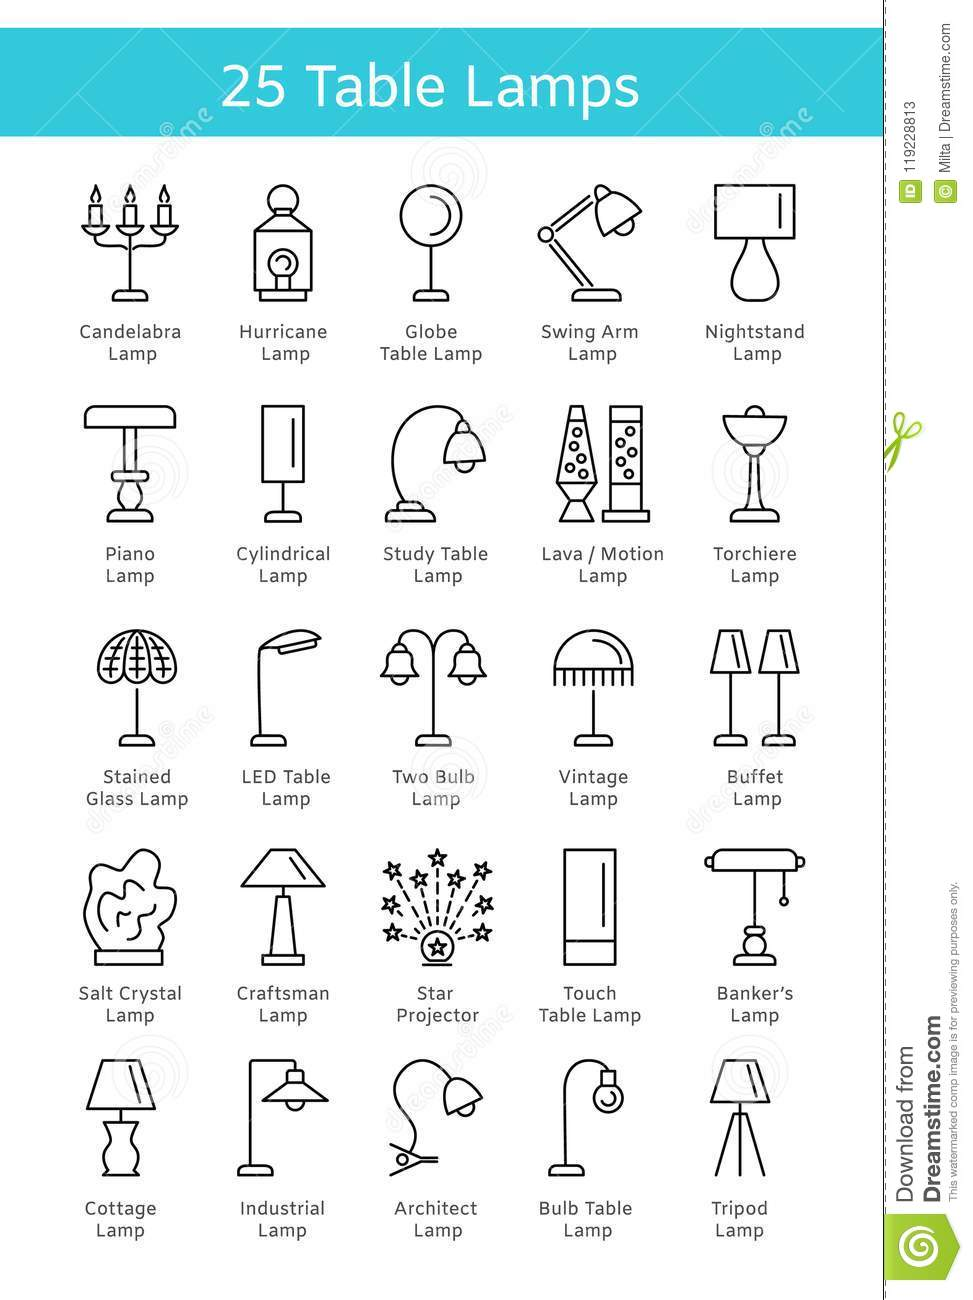 Table Lamps Of Different Types Set Of Light Fixtures For Bedroom